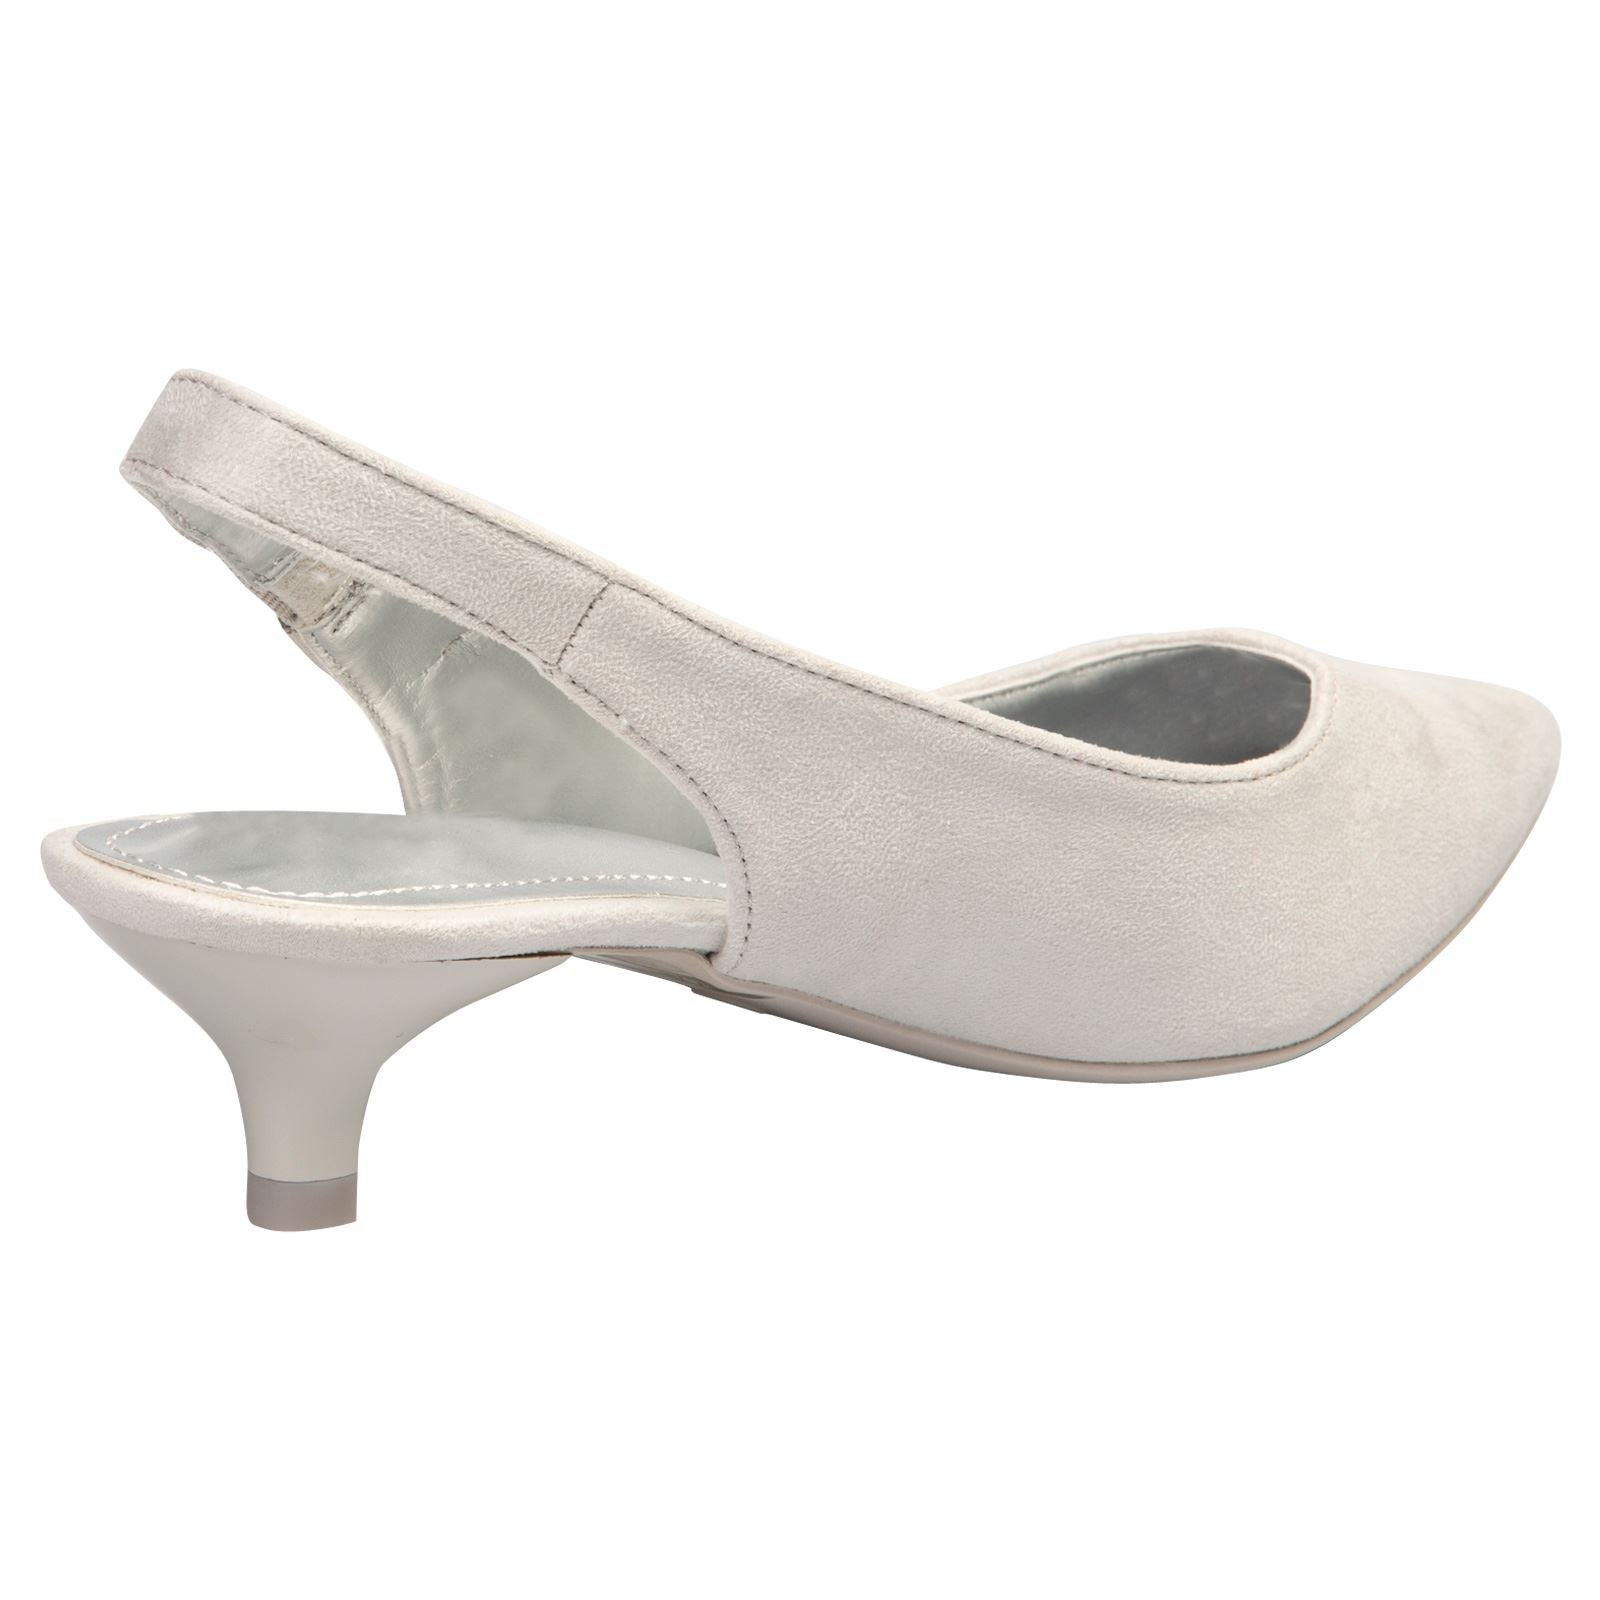 Alora Slingback Pumps in Grey Faux Suede - Feet First Fashion